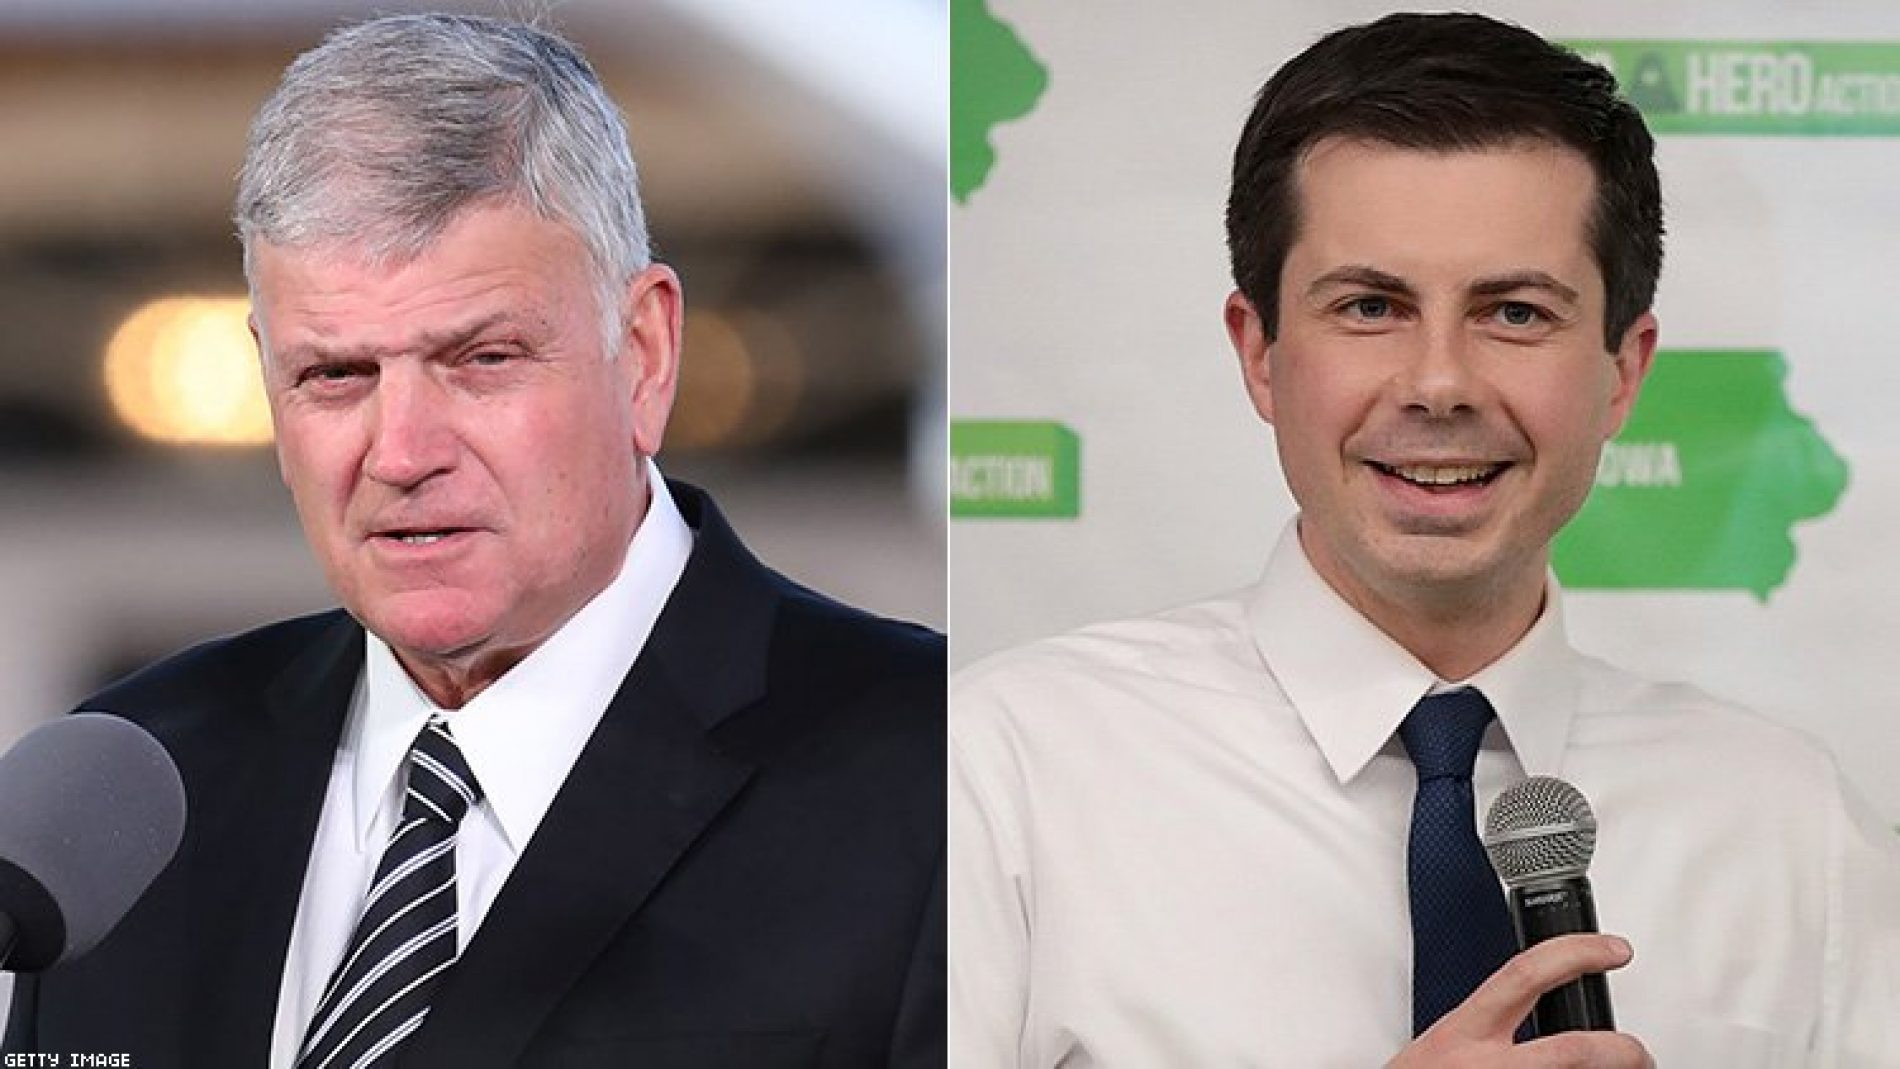 Franklin Graham gets told off on his hypocrisy over his rebuke of Pete Buttigieg